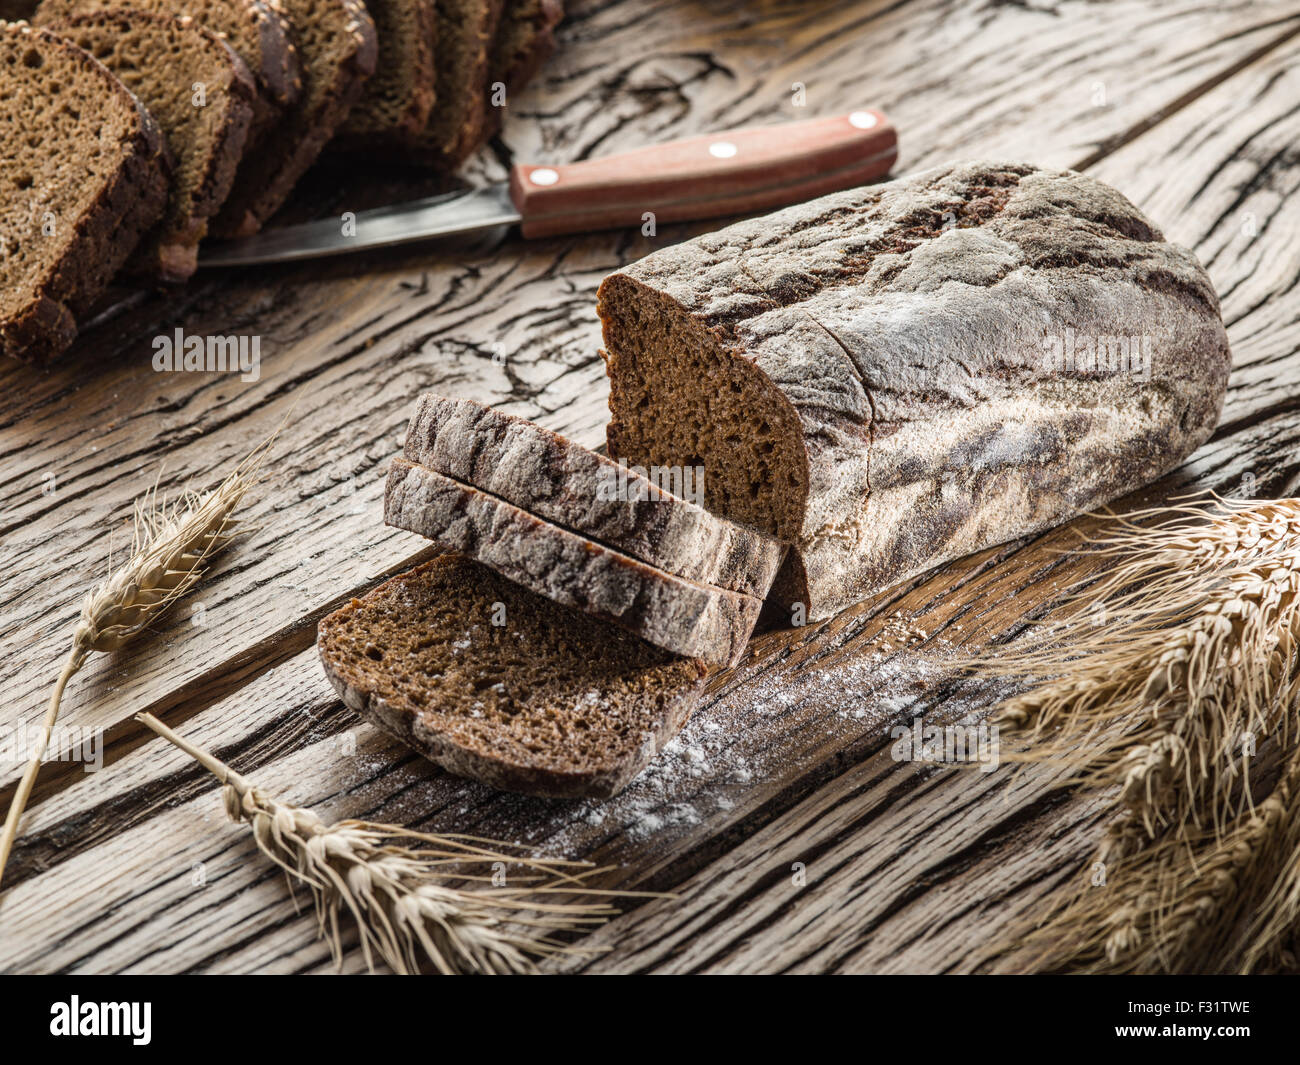 Sliced black bread on the old wooden plank. Stock Photo